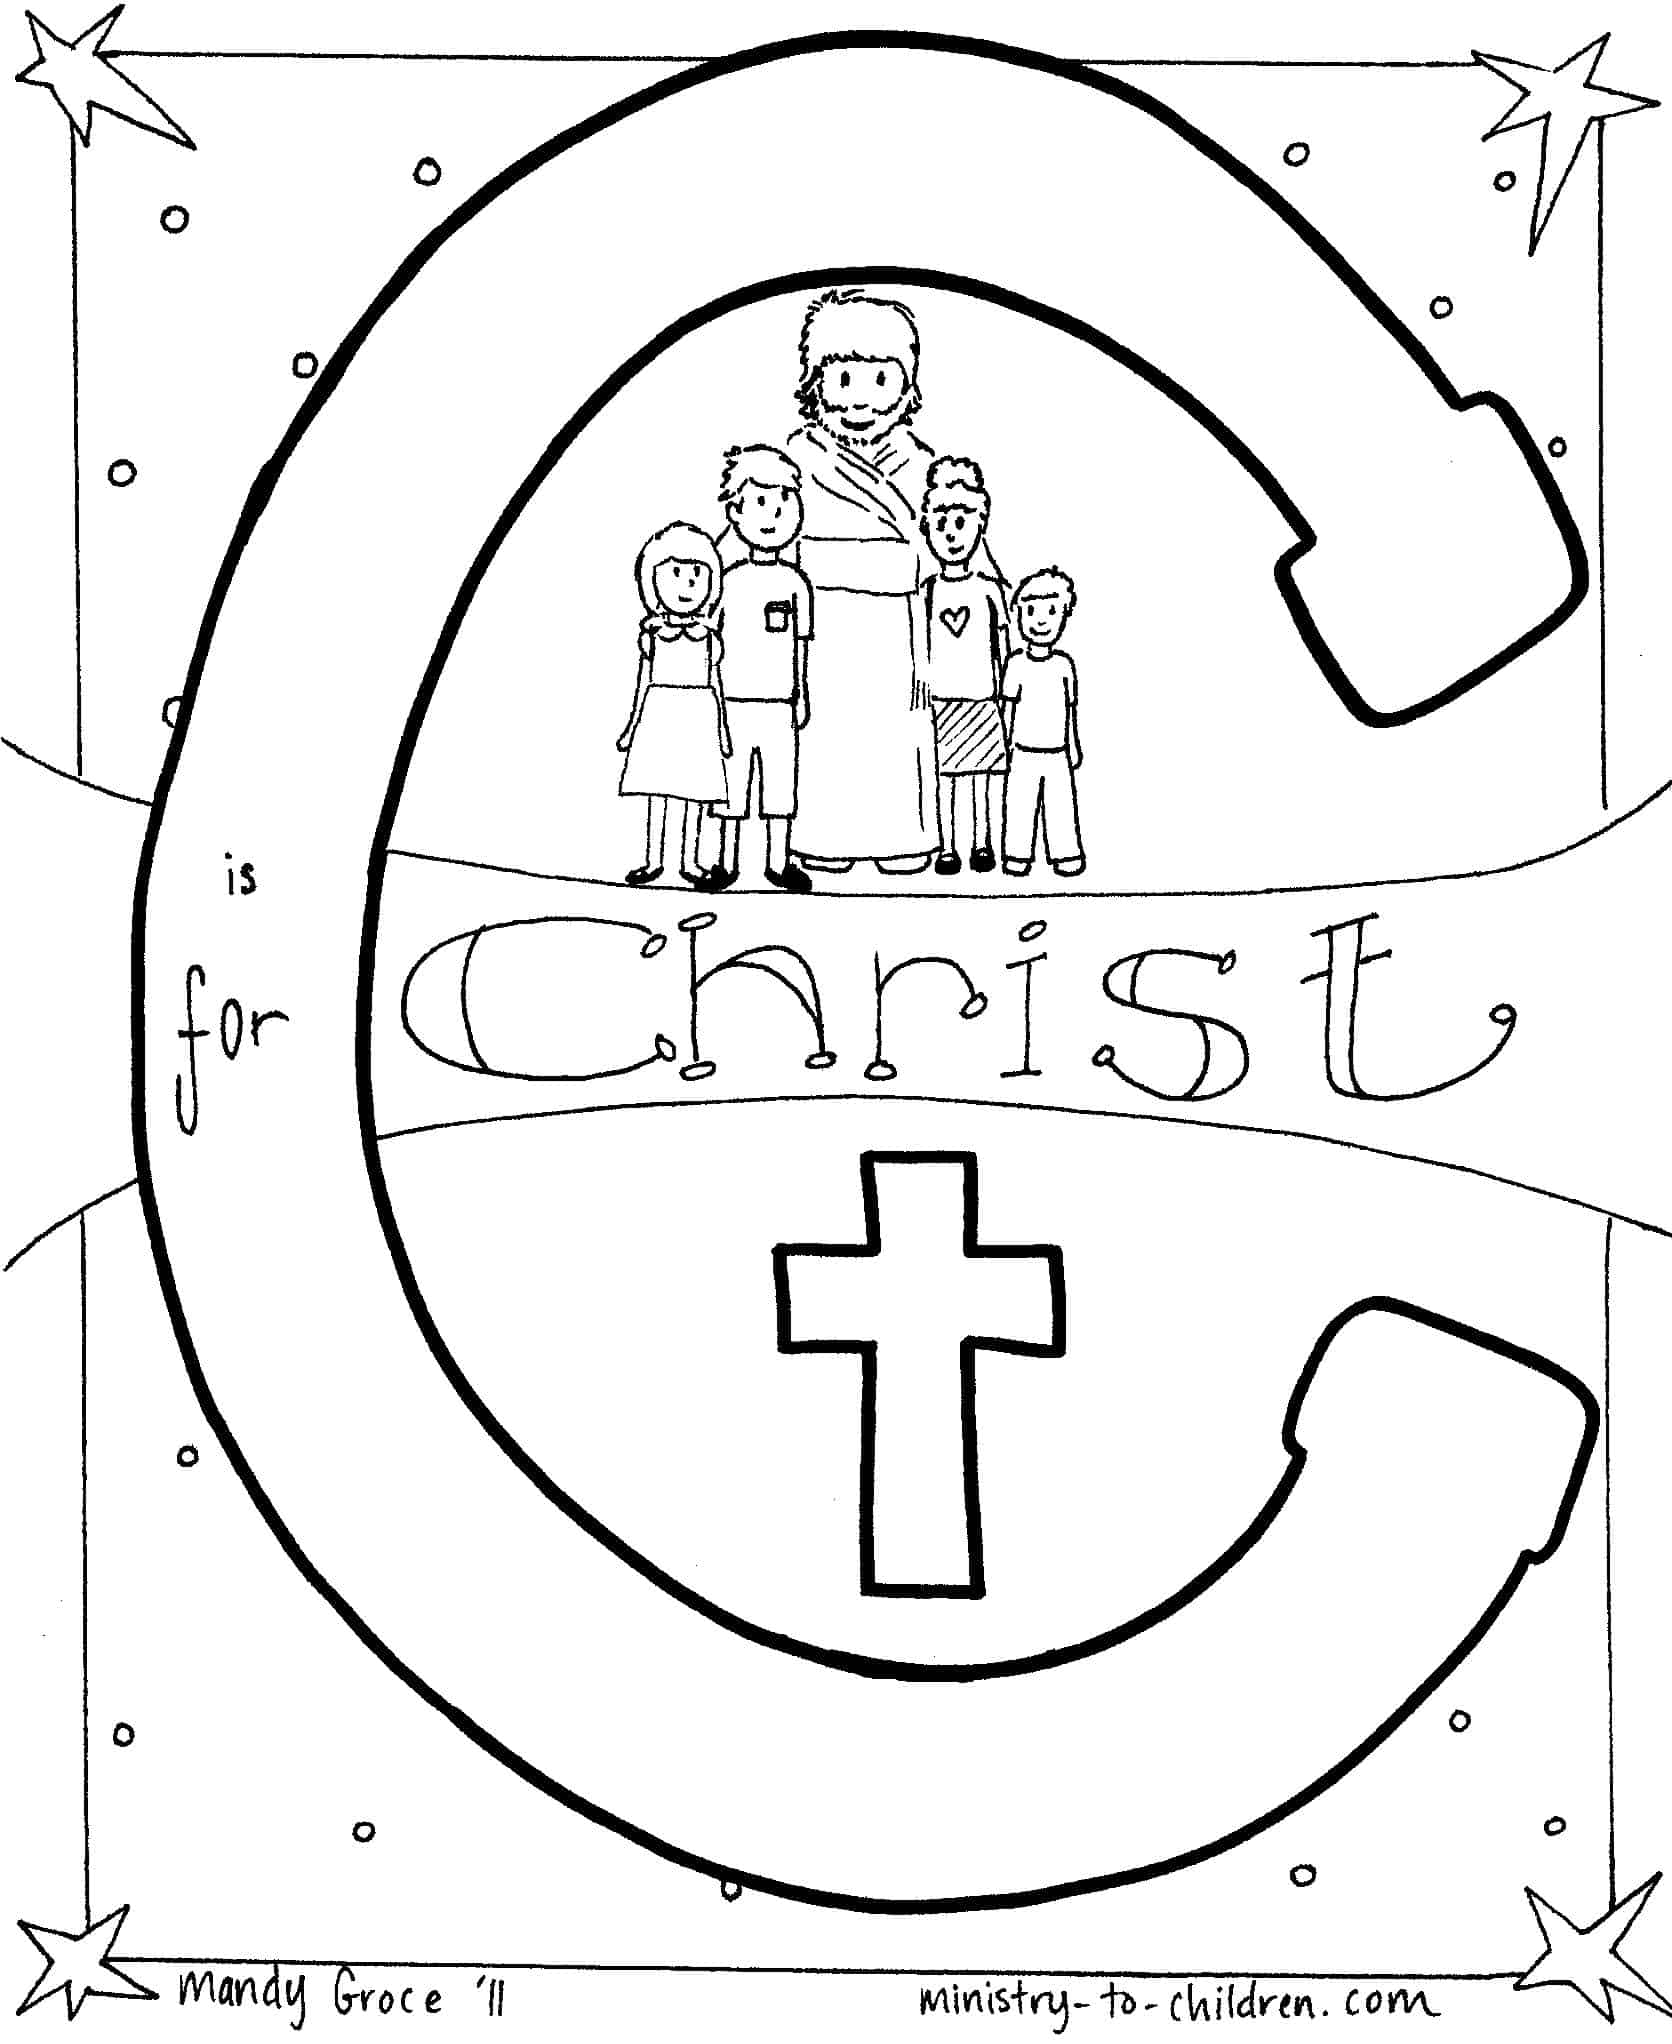 Jesus On Trial Coloring Page - Get Coloring Pages | 2044x1672